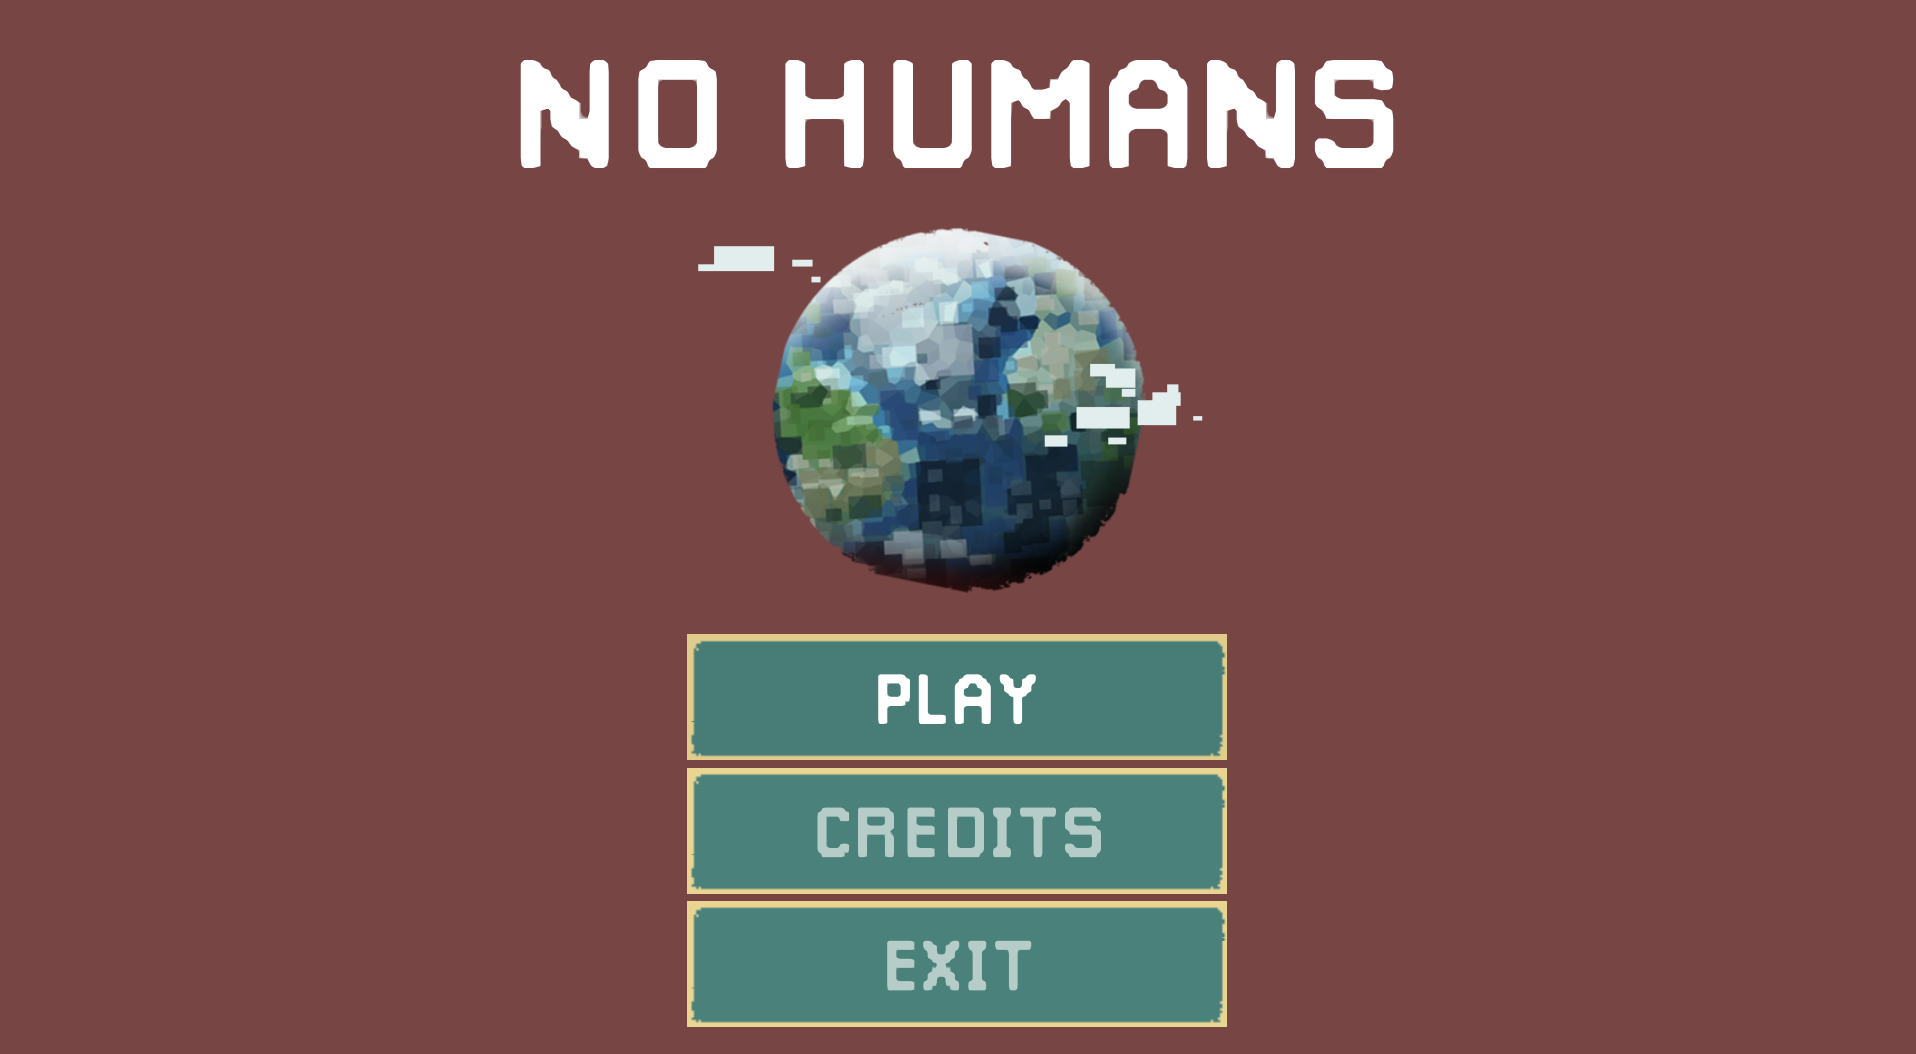 No humans - Splash screen